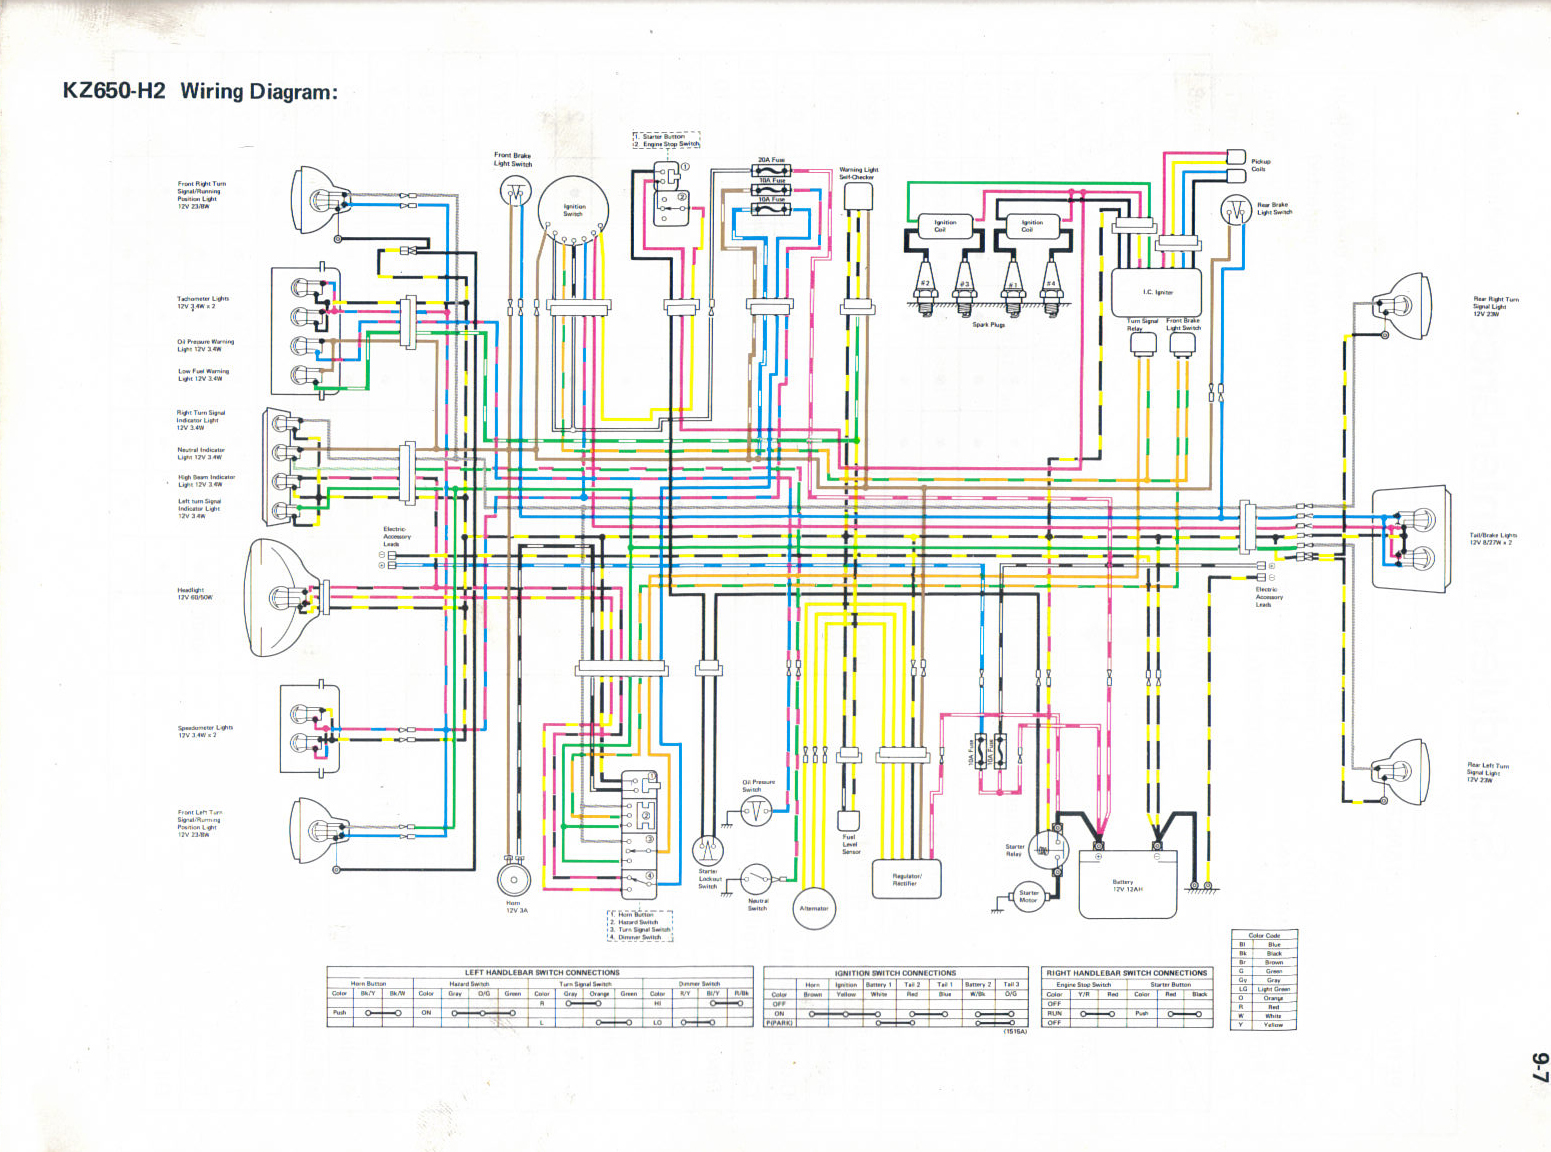 Japanese Wiring Diagram Kawasaki Km 100 Completed Diagrams And Apparatus By The Harnessing Of Centrifugal Force Image Simple Post Klf 220 Schematic